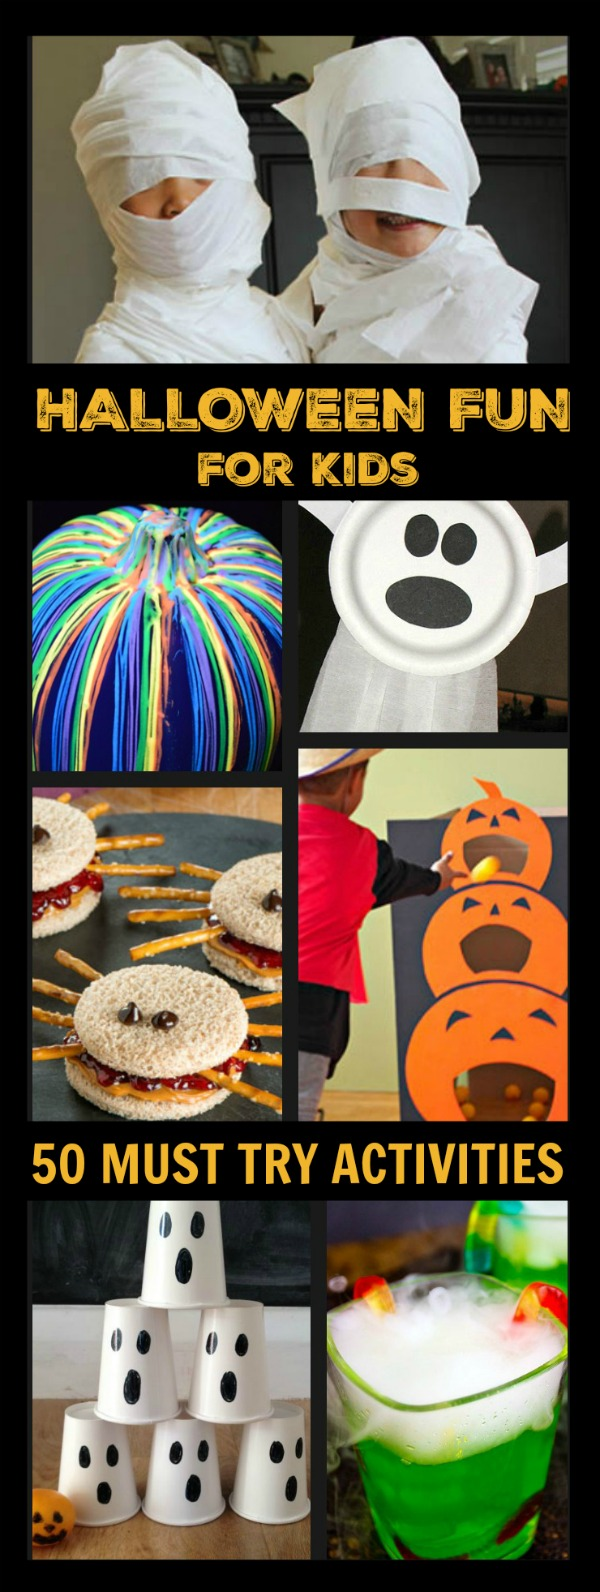 50 SUPER FUN HALLOWEEN ACTIVITIES FOR KIDS- games, crafts, recipes, and more!